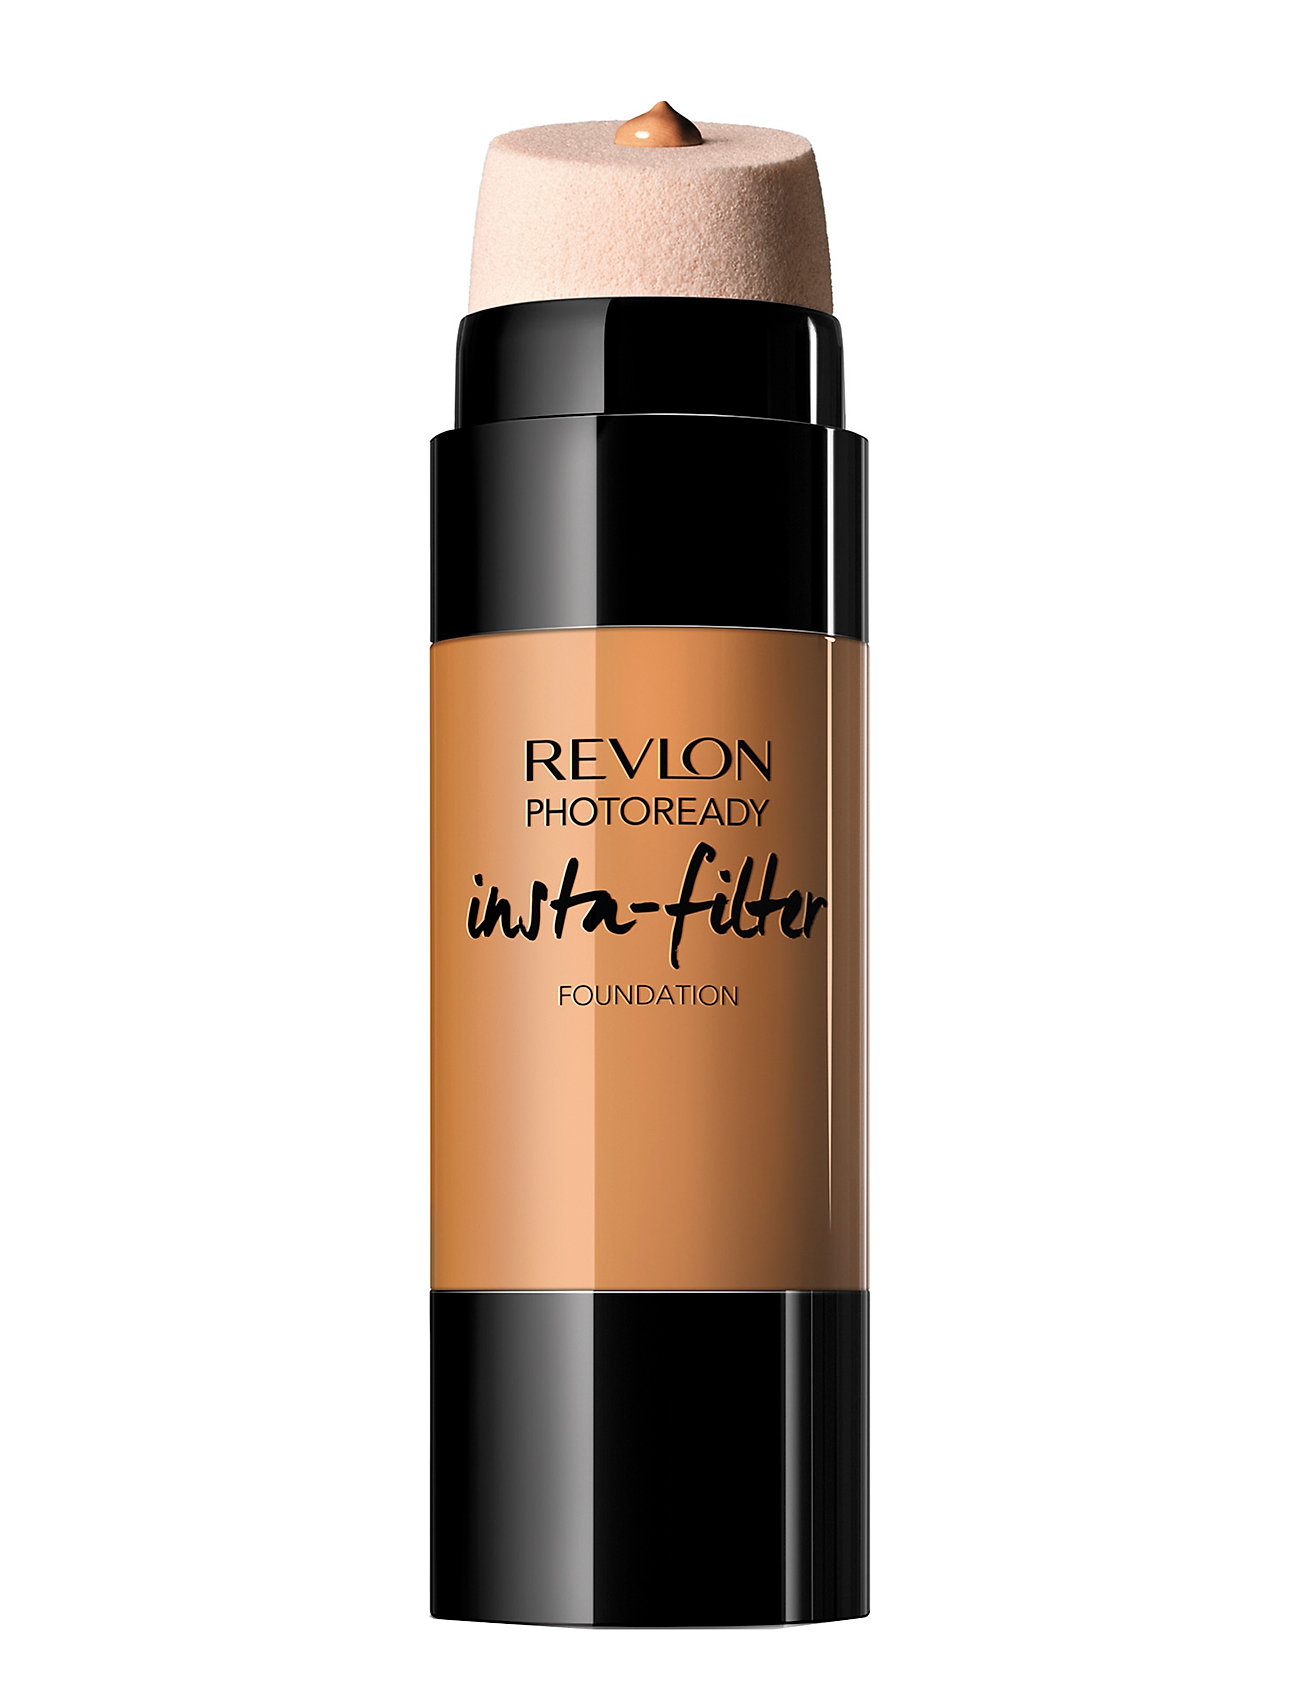 Revlon PHOTOREADY INSTA-FILTER FOUNDATION 400 CARAMEL - 400 CARAMEL